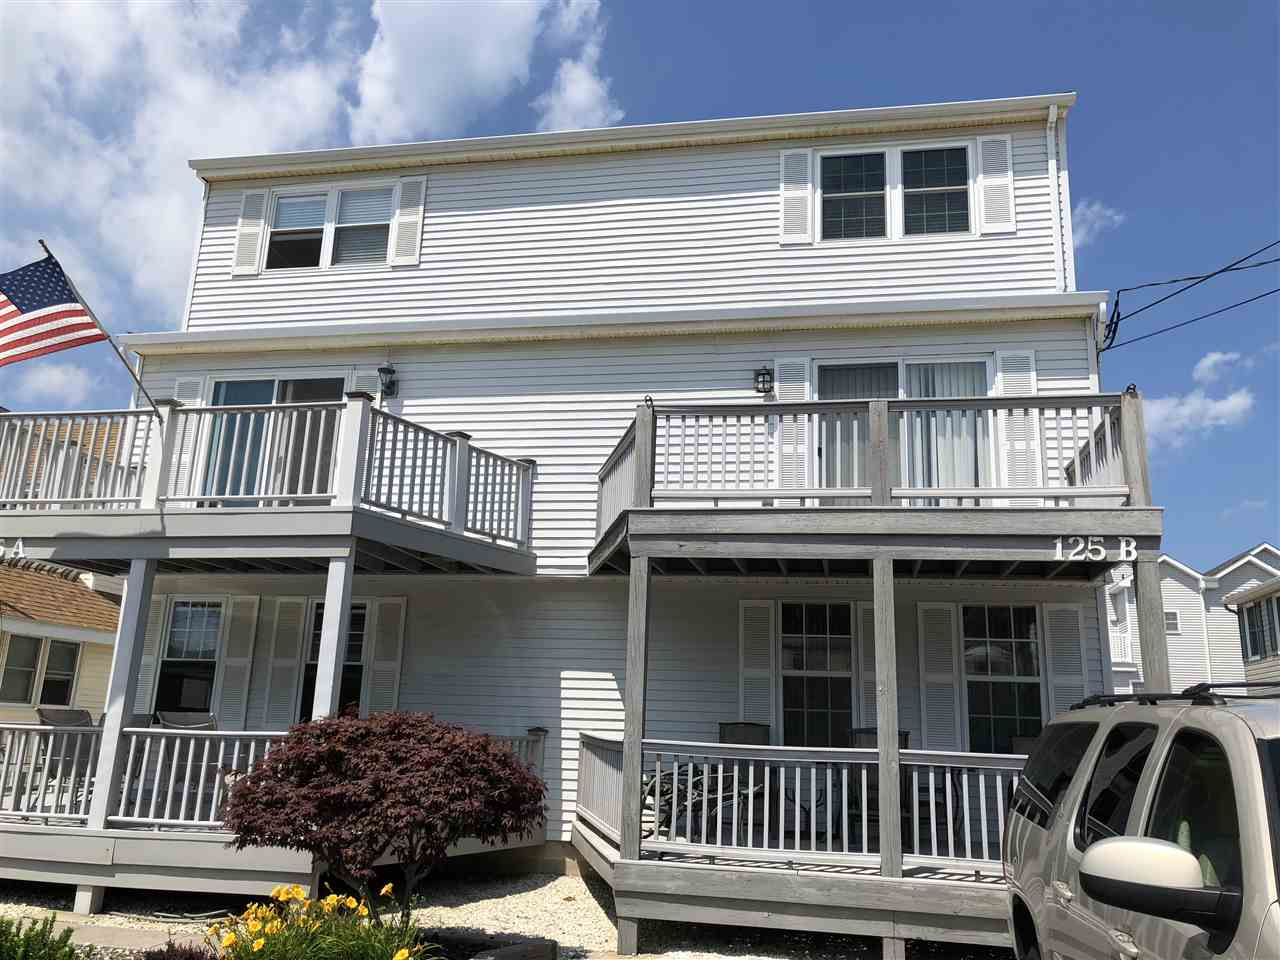 125, Unit B 61st, Sea Isle City